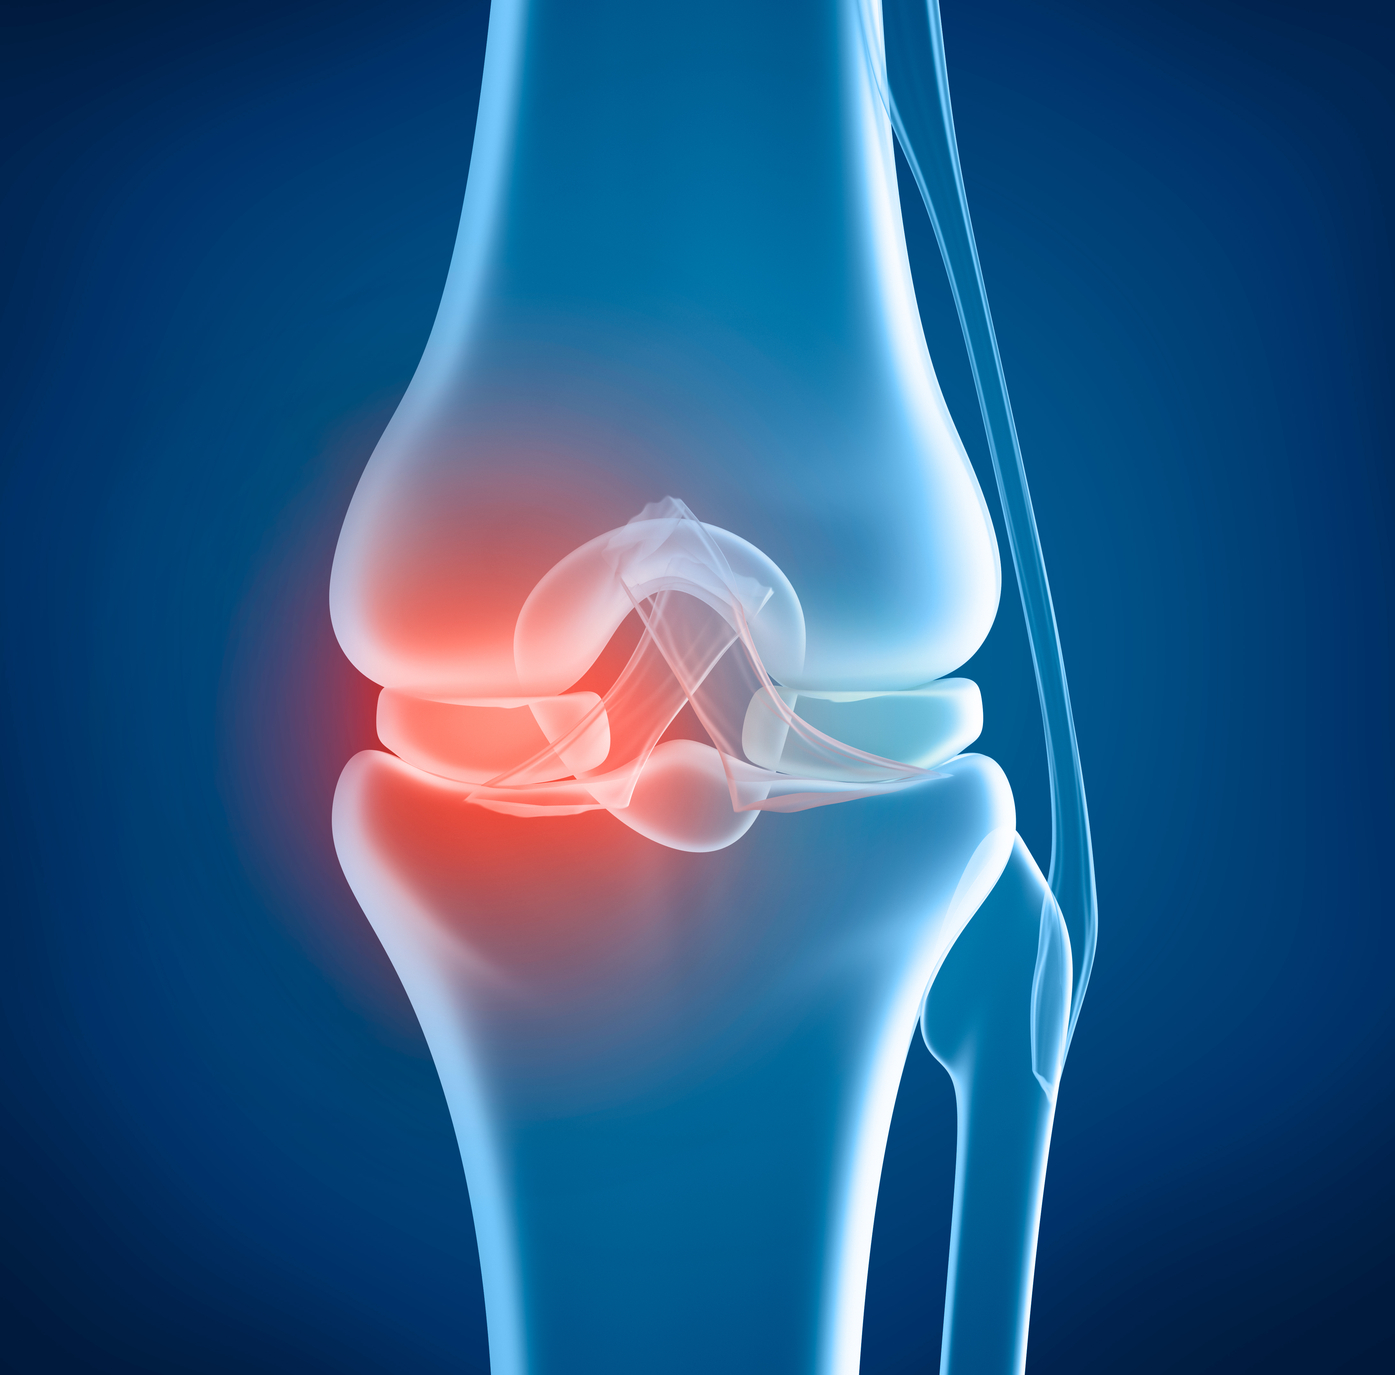 d449cb9d85 Knee replacement: Life changing or a disappointment? - Harvard ...